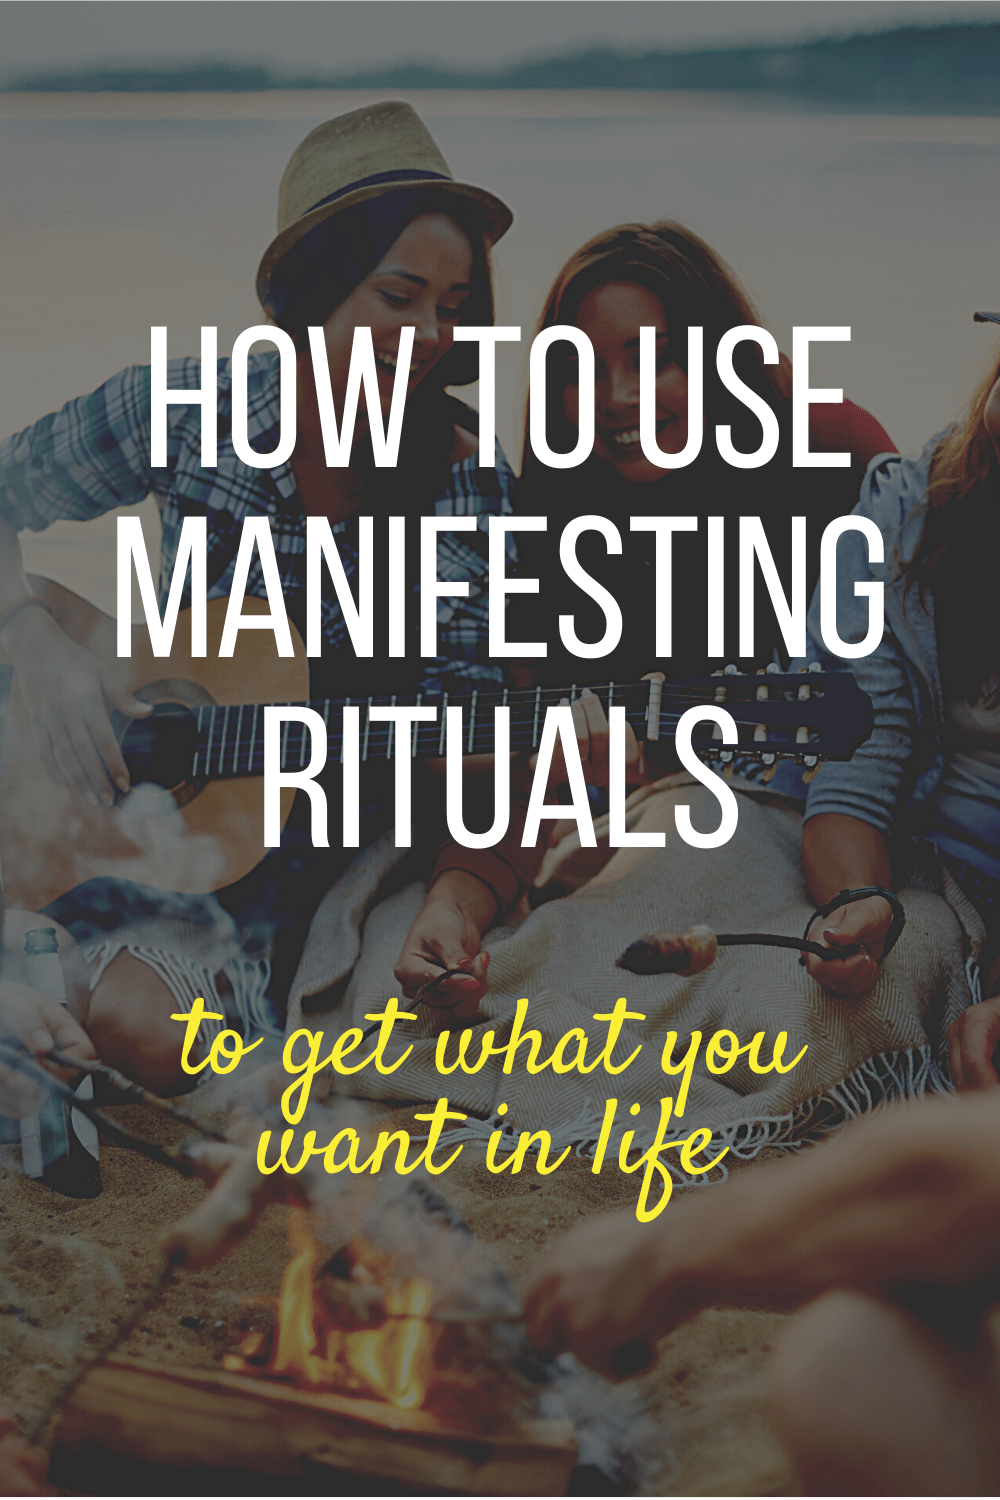 Find out how easy it is to create a manifesting ritual to help you get what you want out of life. Includes a free manifestation planner and worksheets to help you figure out which rituals are best for you.